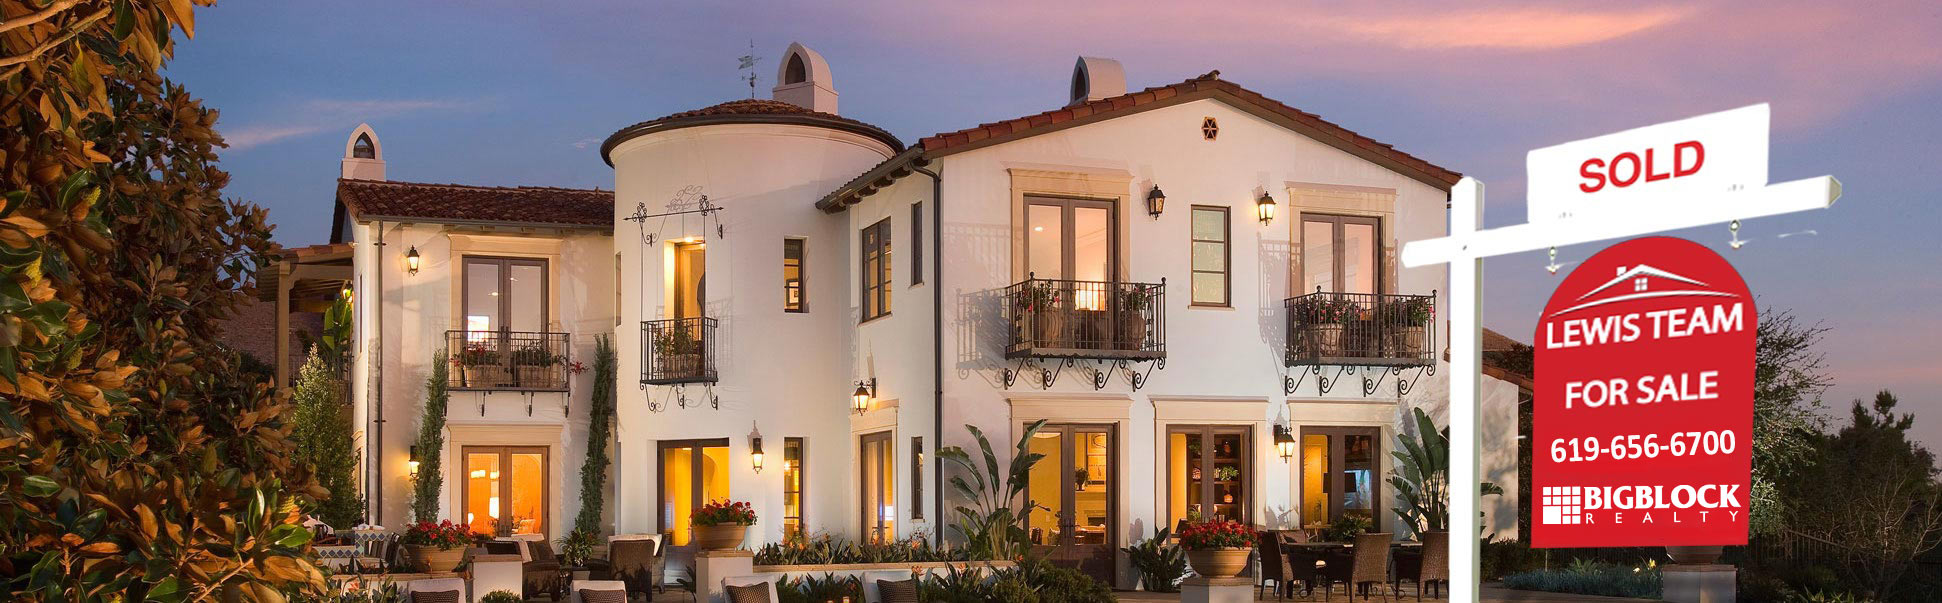 Admirable 3 Bedroom Homes In San Diego Download Free Architecture Designs Embacsunscenecom